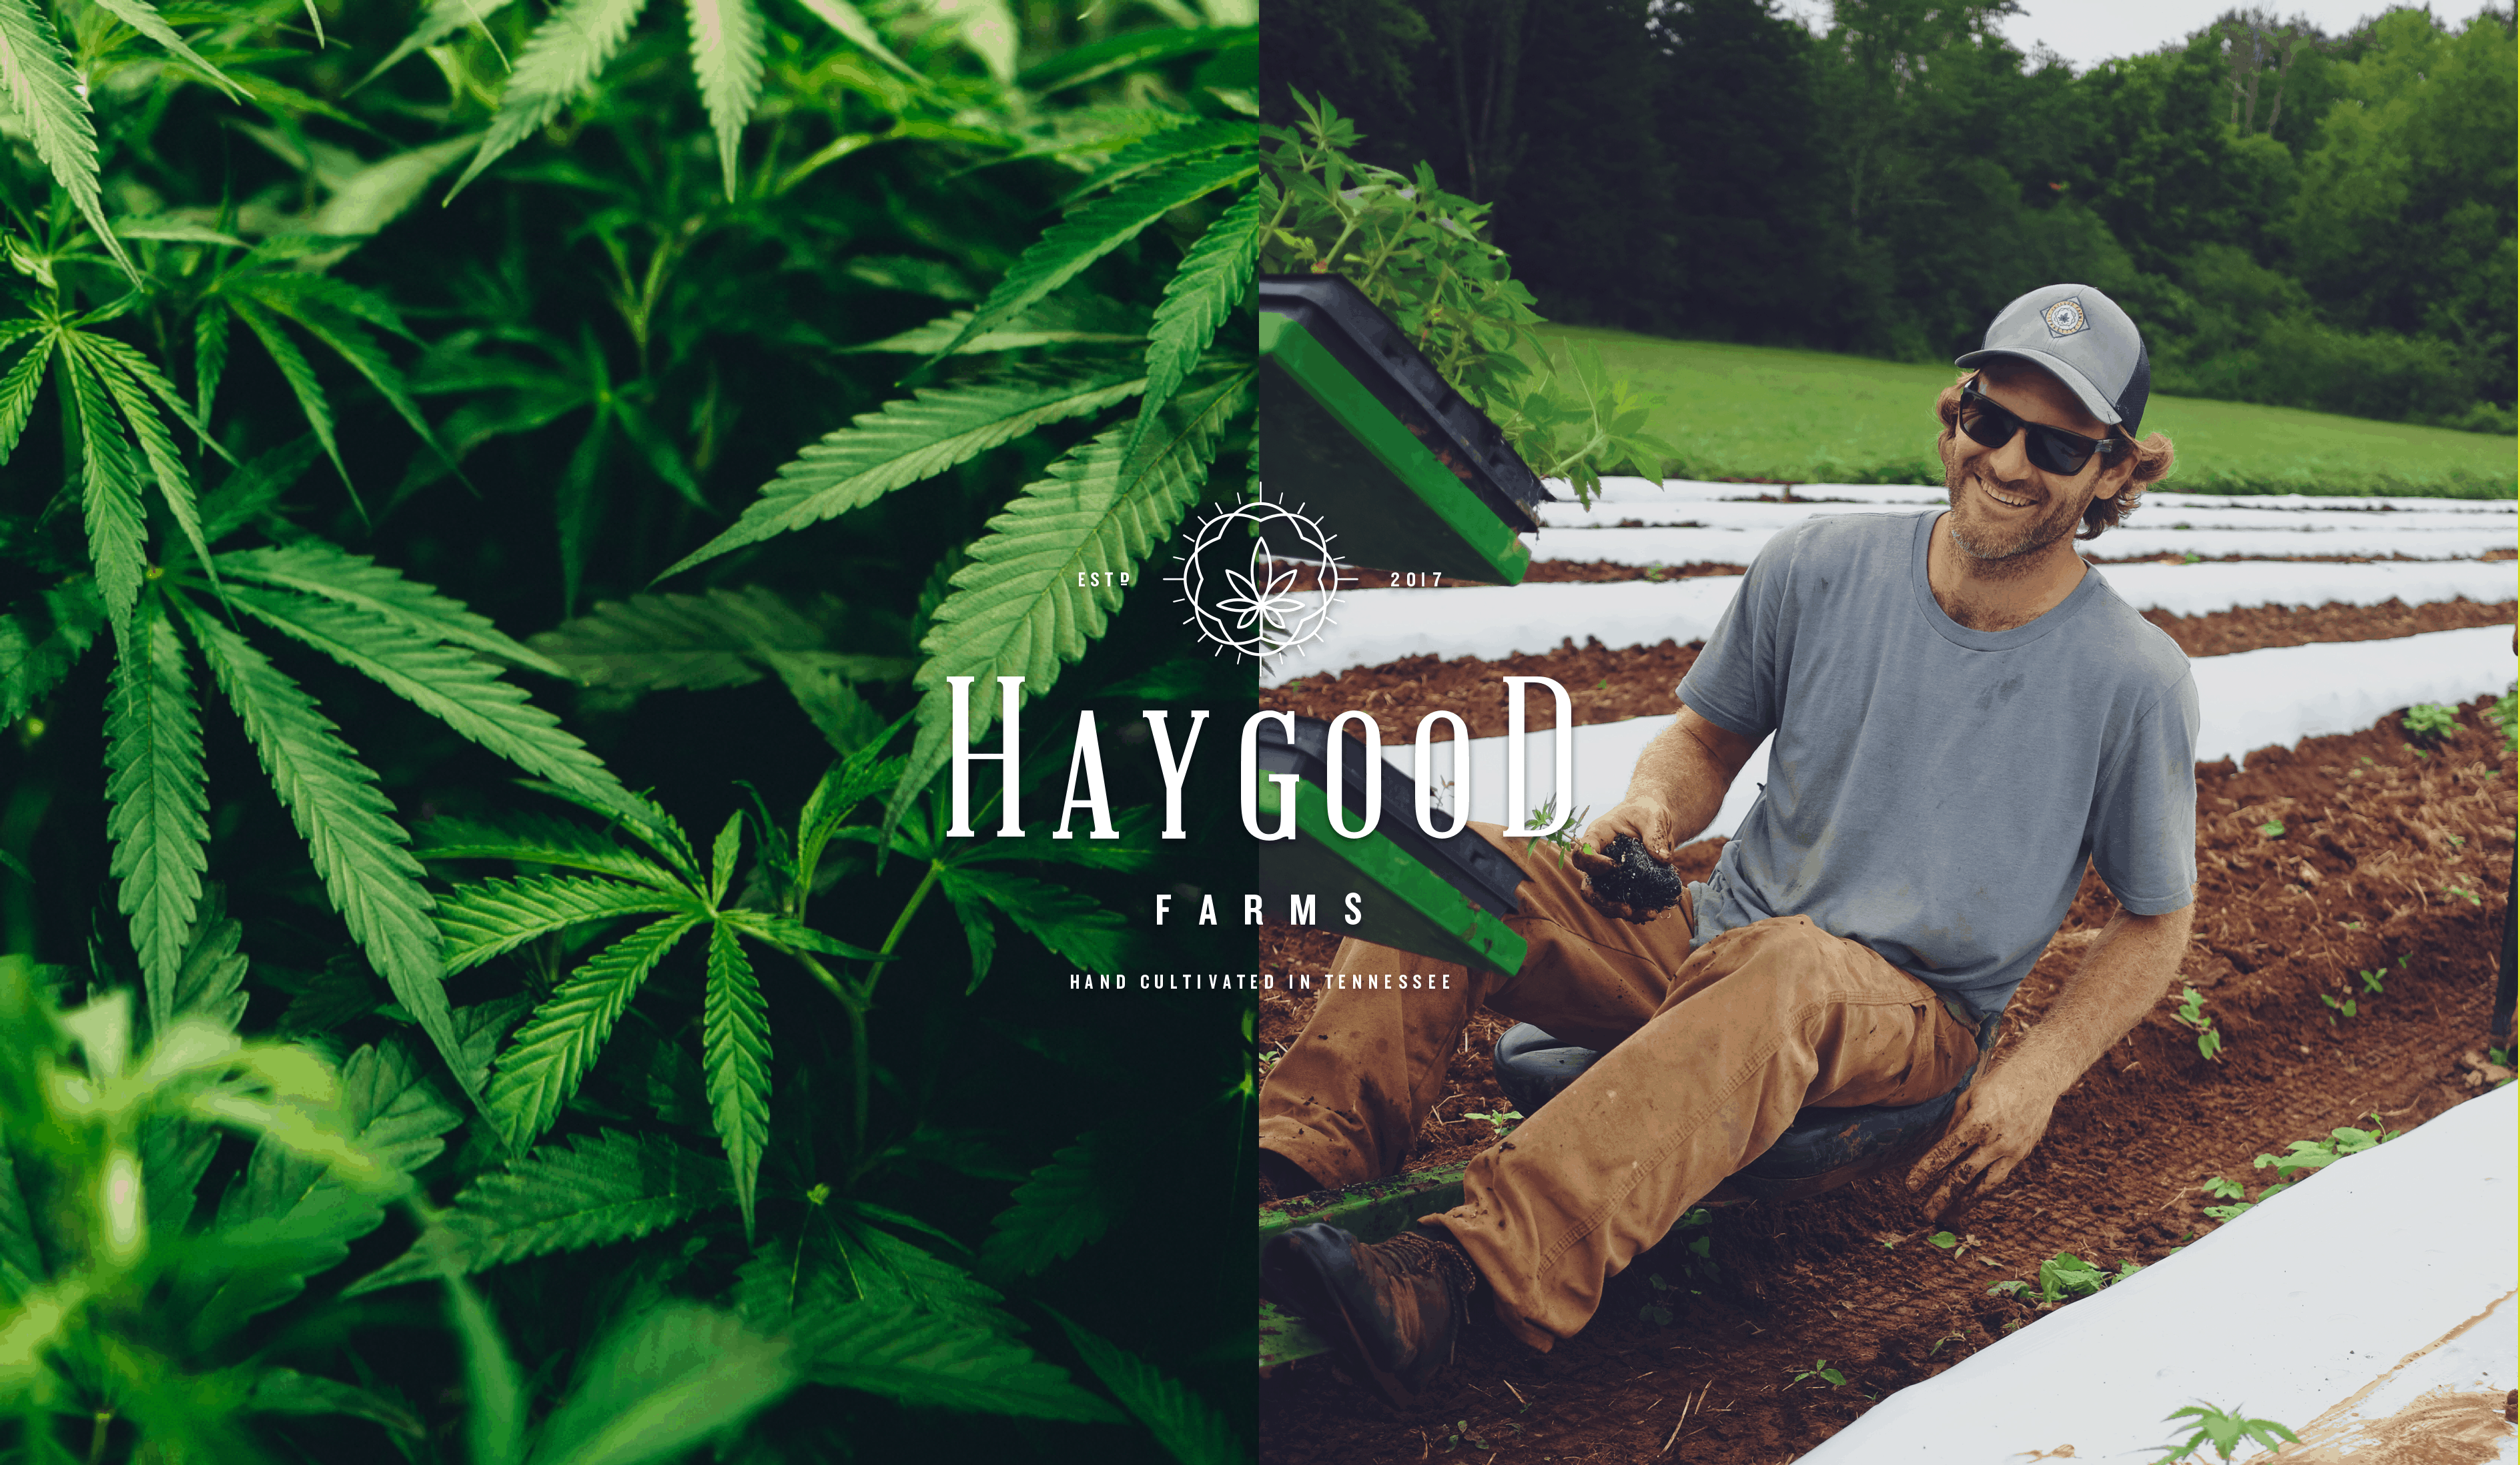 Haygood Farms